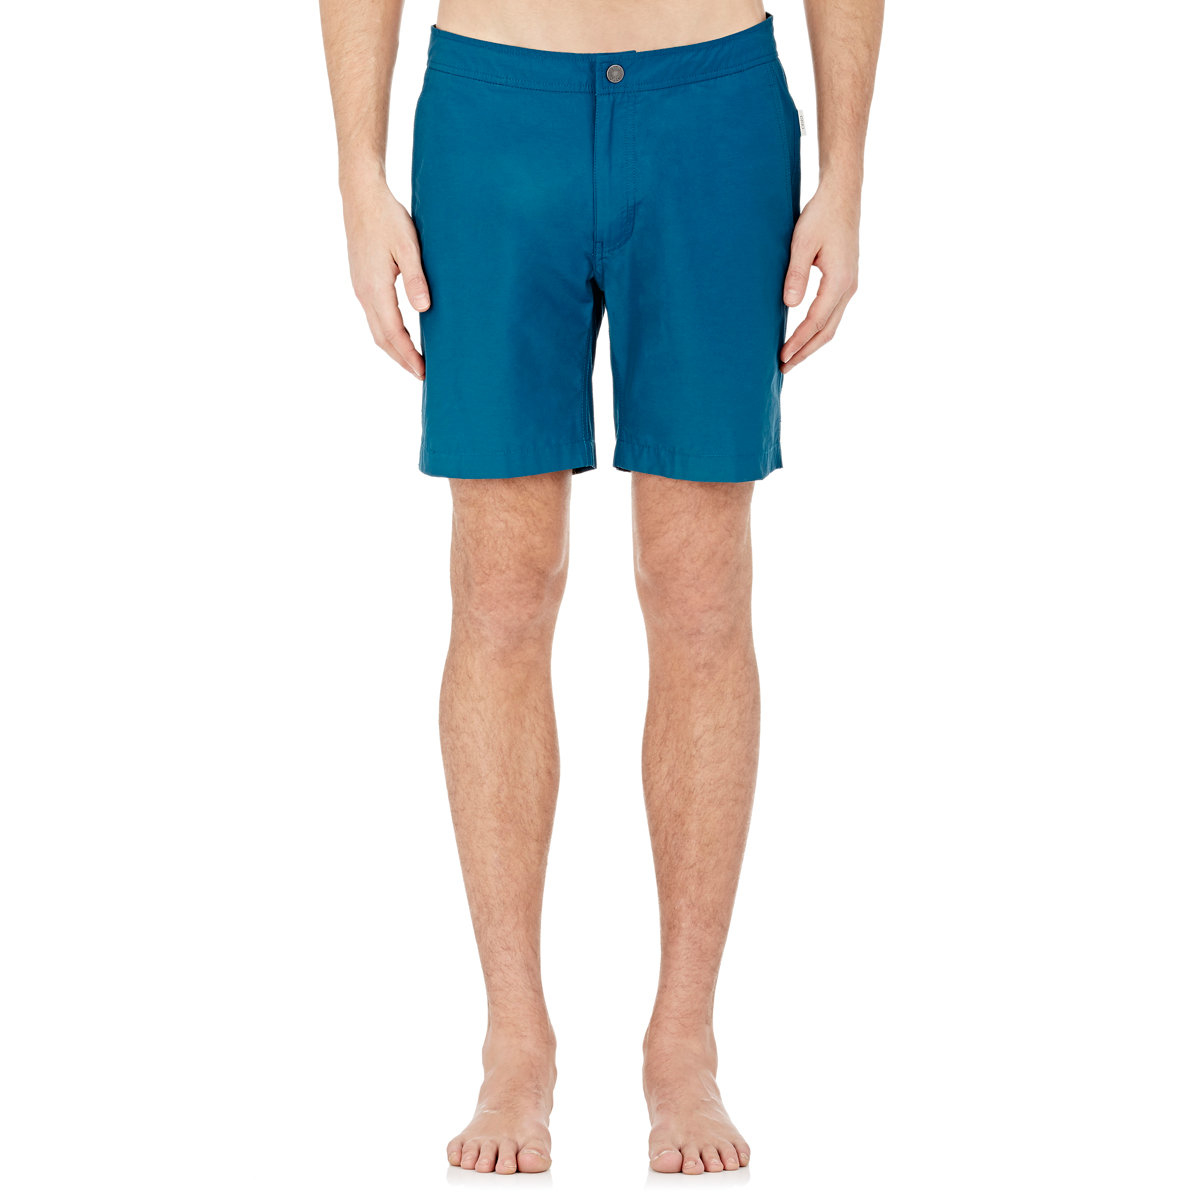 onia men Onia forgoes passing trends and employs impeccable attention to detail to produce its superior apparel the label's swim shorts feature tailored silhouettes, quick-drying properties and a crisp handle, so you'll look as good as you feel.